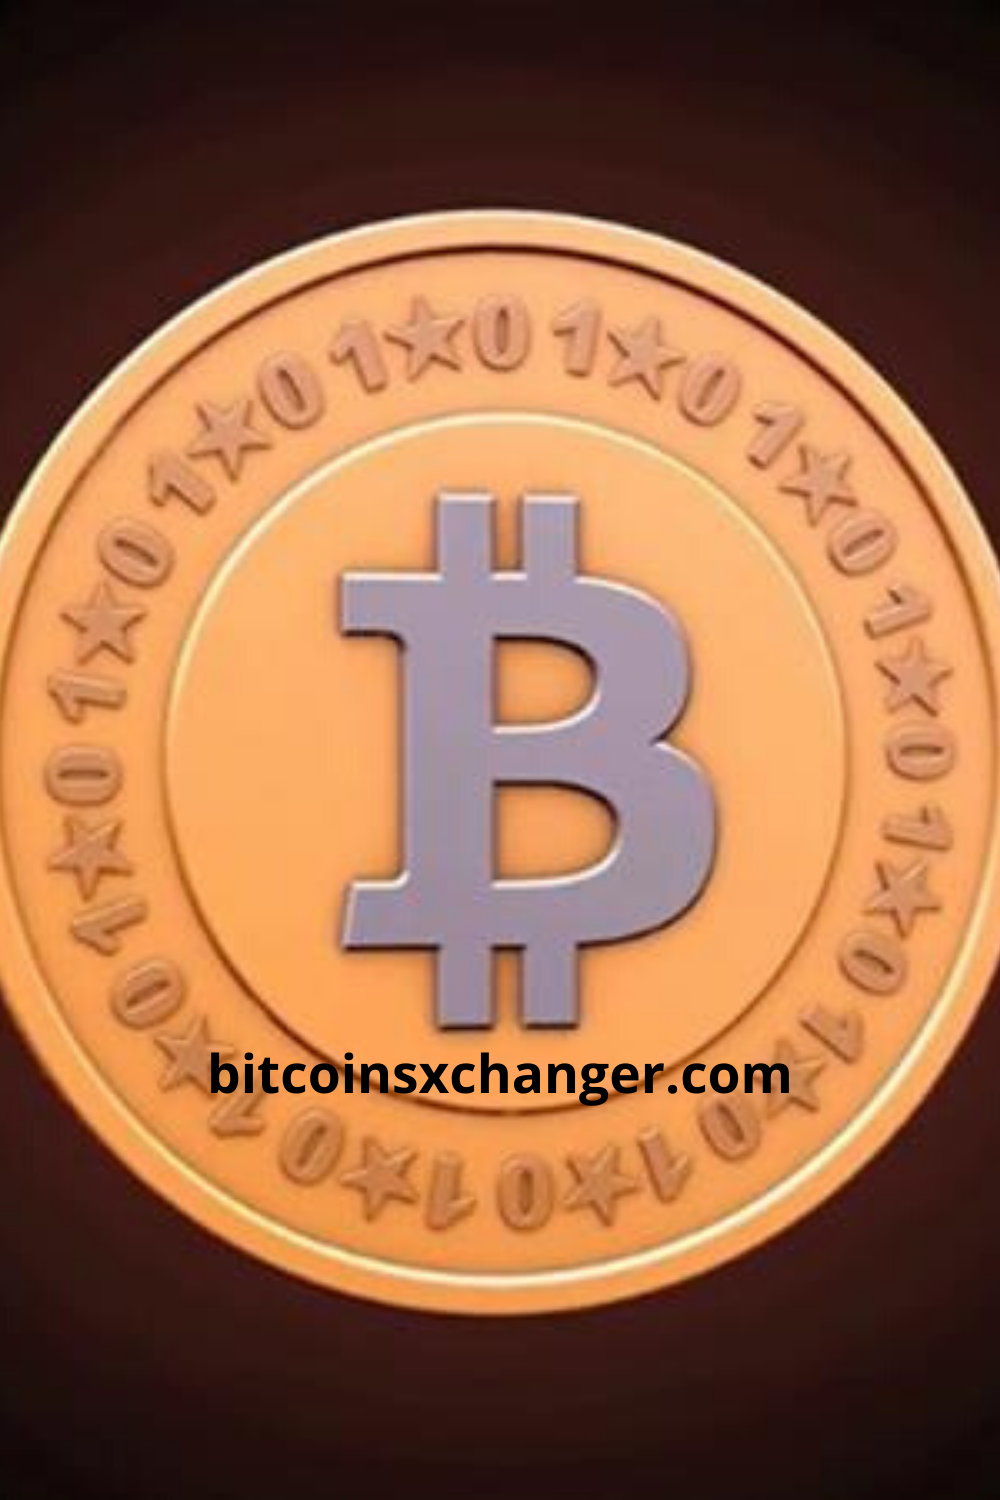 How To Cash Out Bitcoin With Secure Transactions Cash Out Bitcoin Bitcoin Transaction